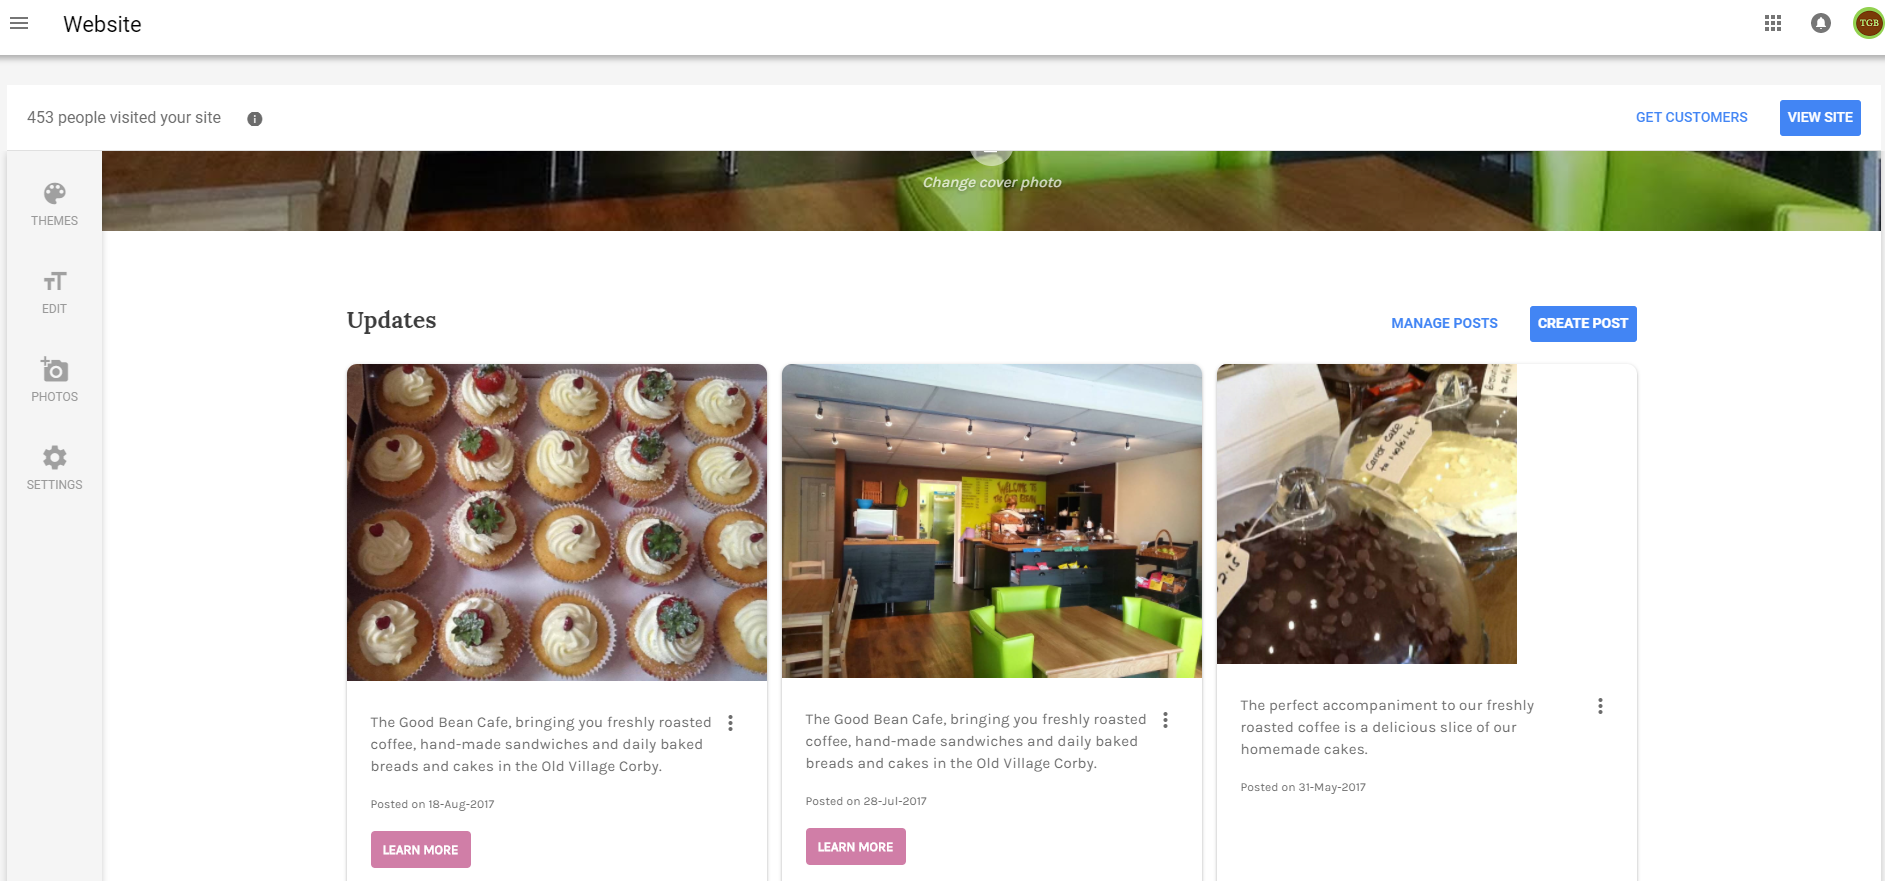 Google Posts on Google Website via the Google My Business Account - Online Ownership